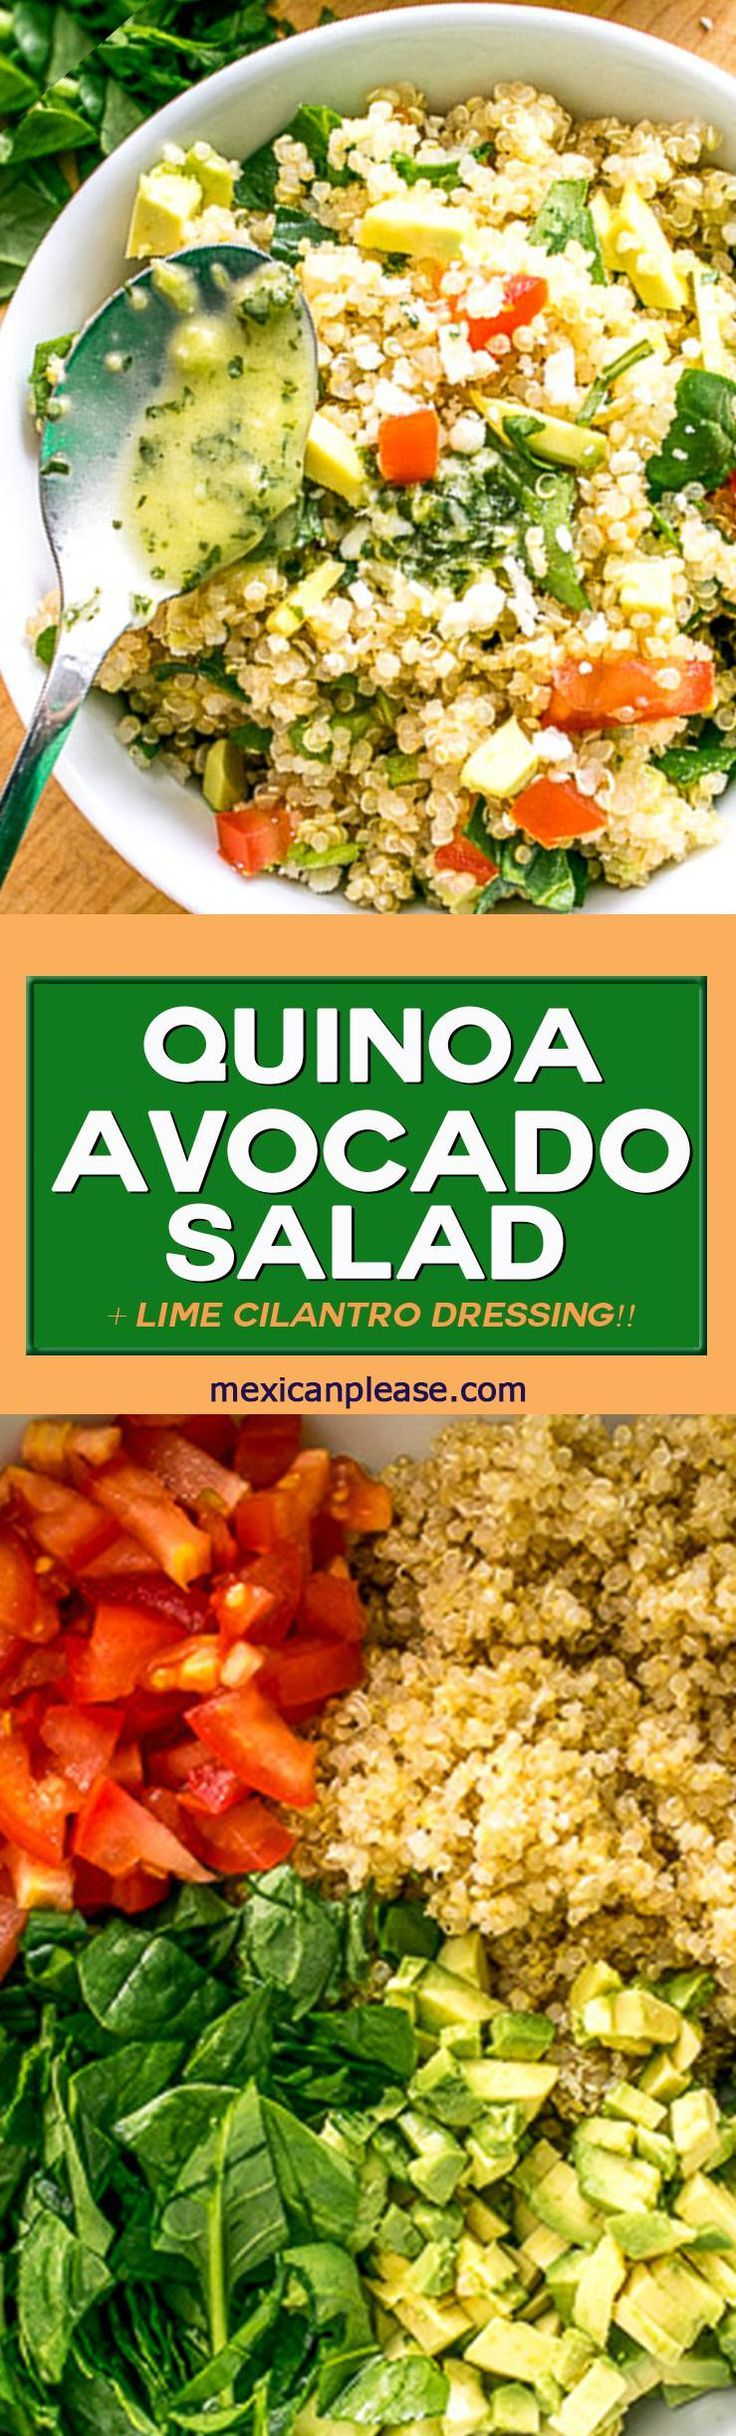 This Quinoa Avocado Salad is ridiculously healthy and tastes great on its own. Add in some Lime Cilantro Dressing and it becomes a keeper!!  Buen Provecho. #quinoa mexicanplease.com